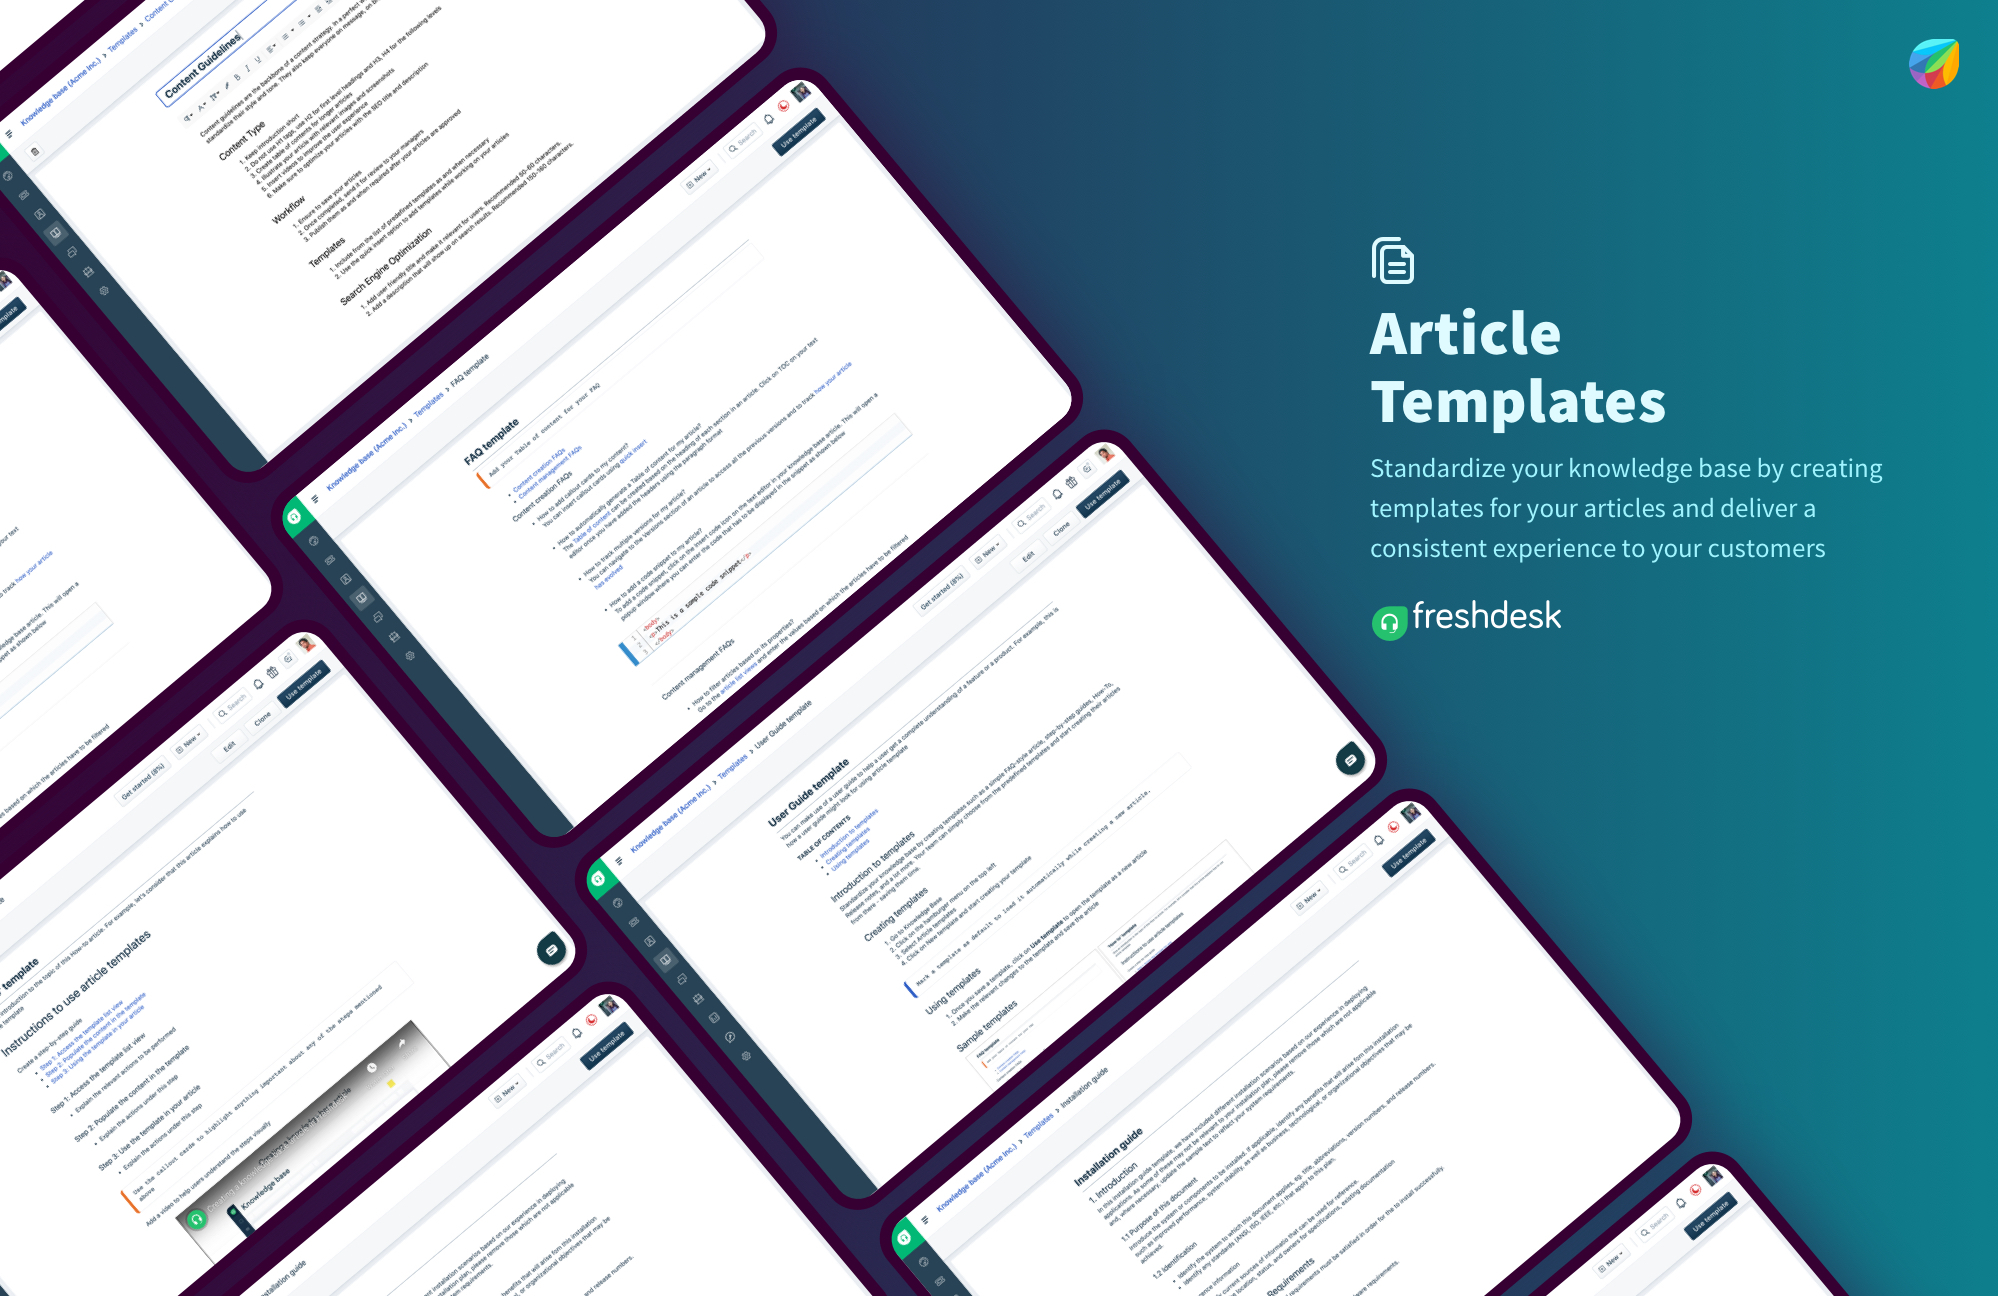 Article Templates in Freshdesk